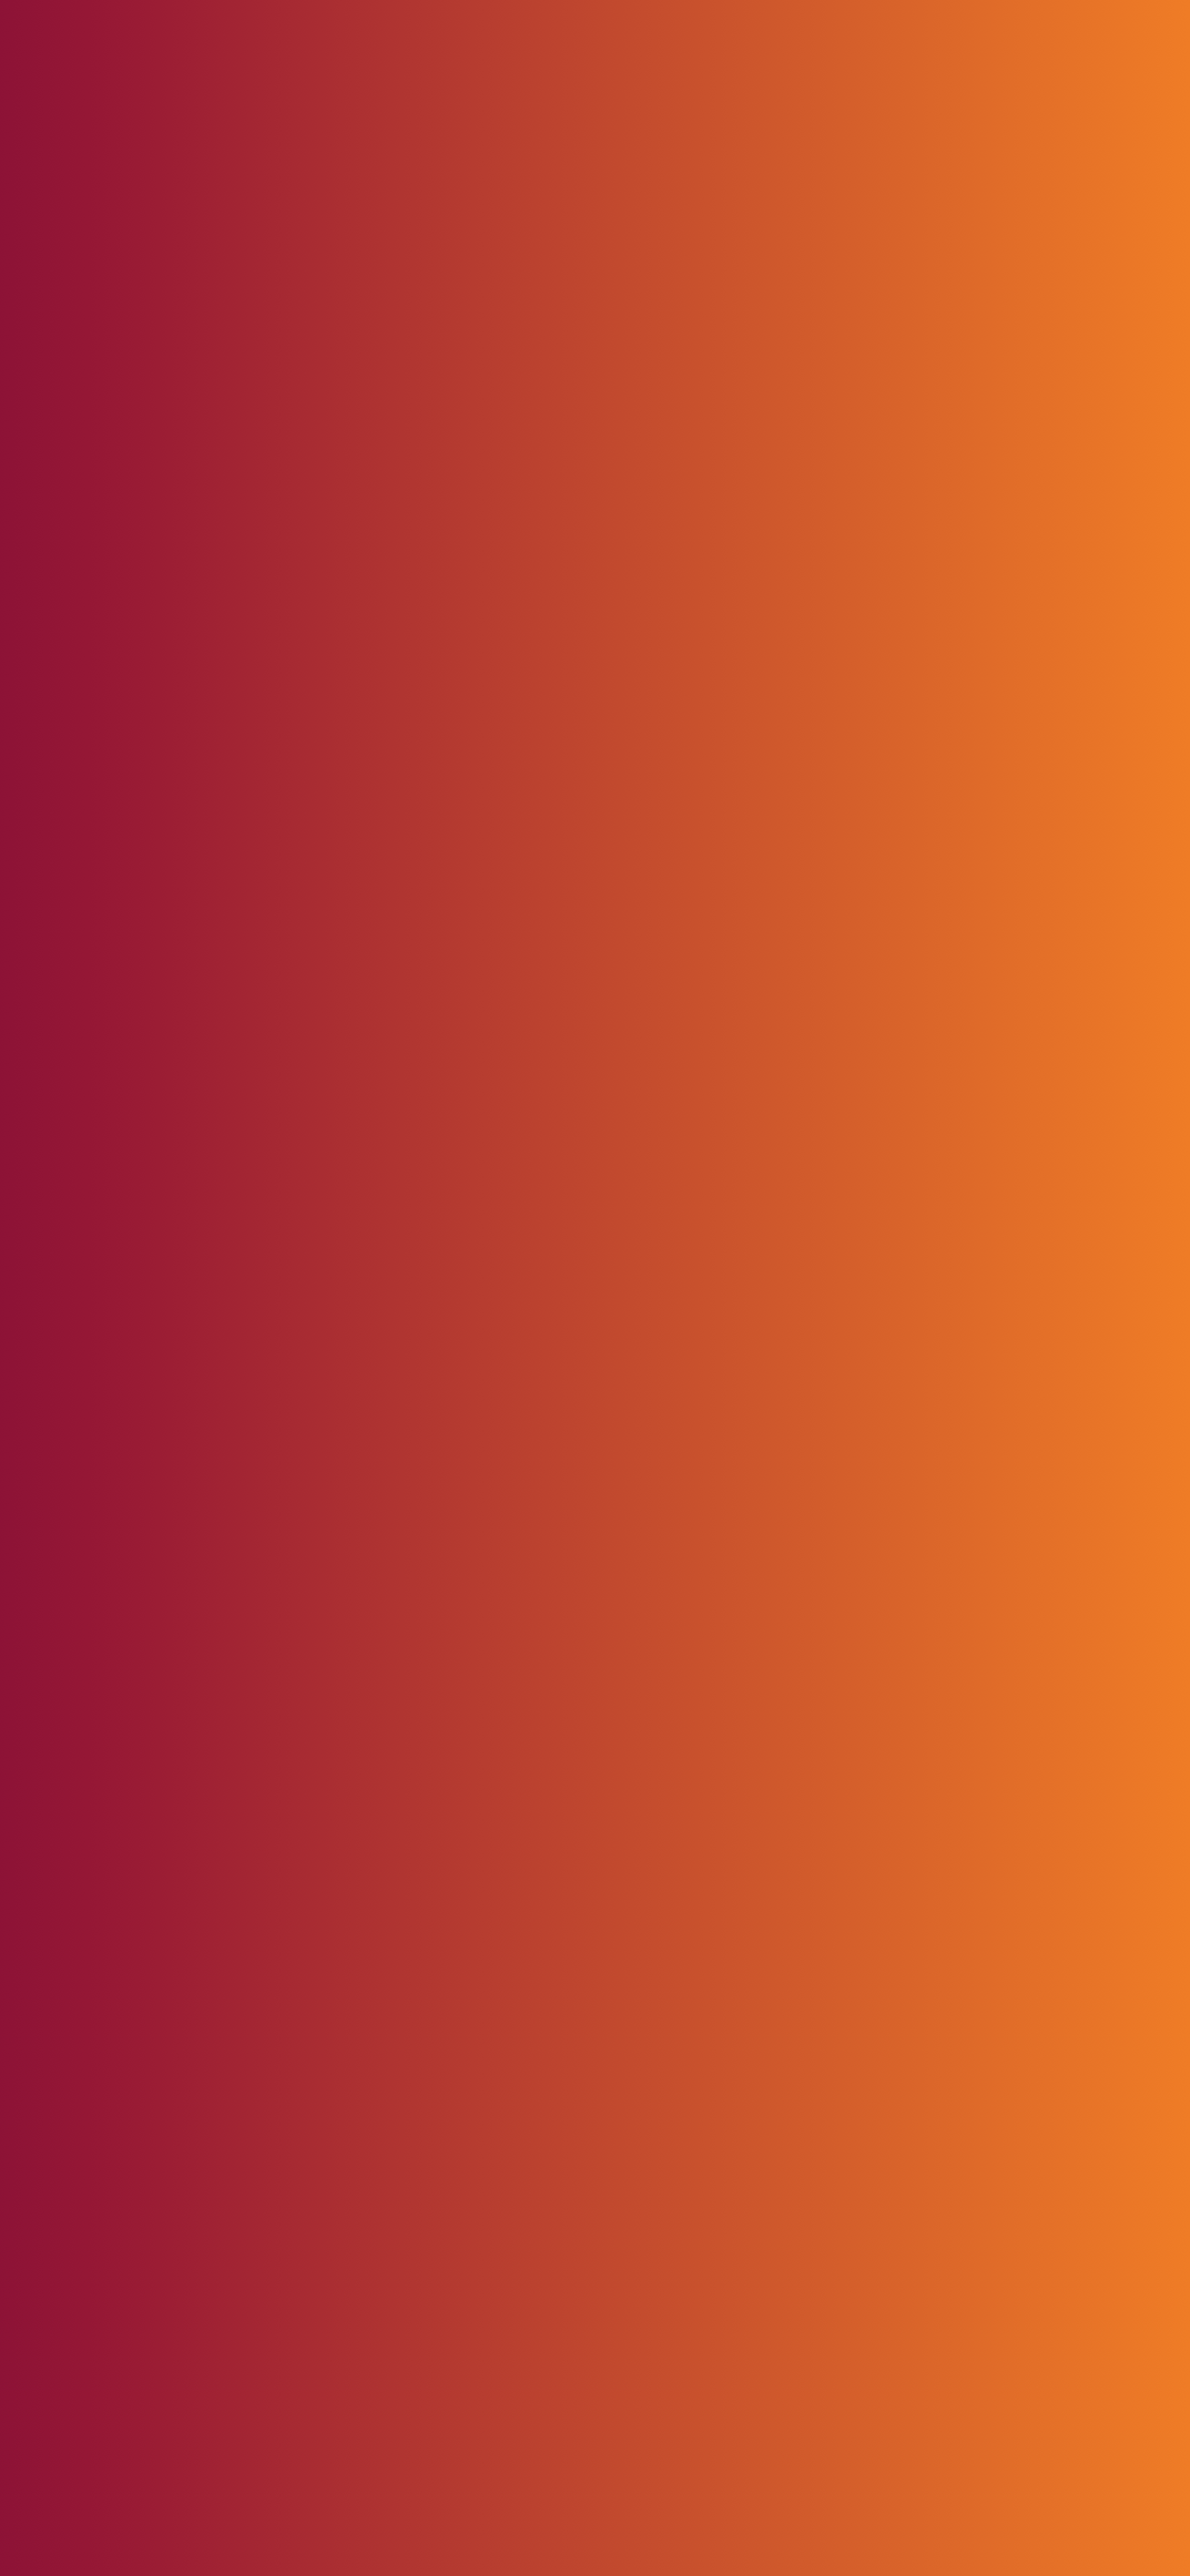 iPhone wallpaper gradient red orange Fonds d'écran iPhone du 10/01/2019